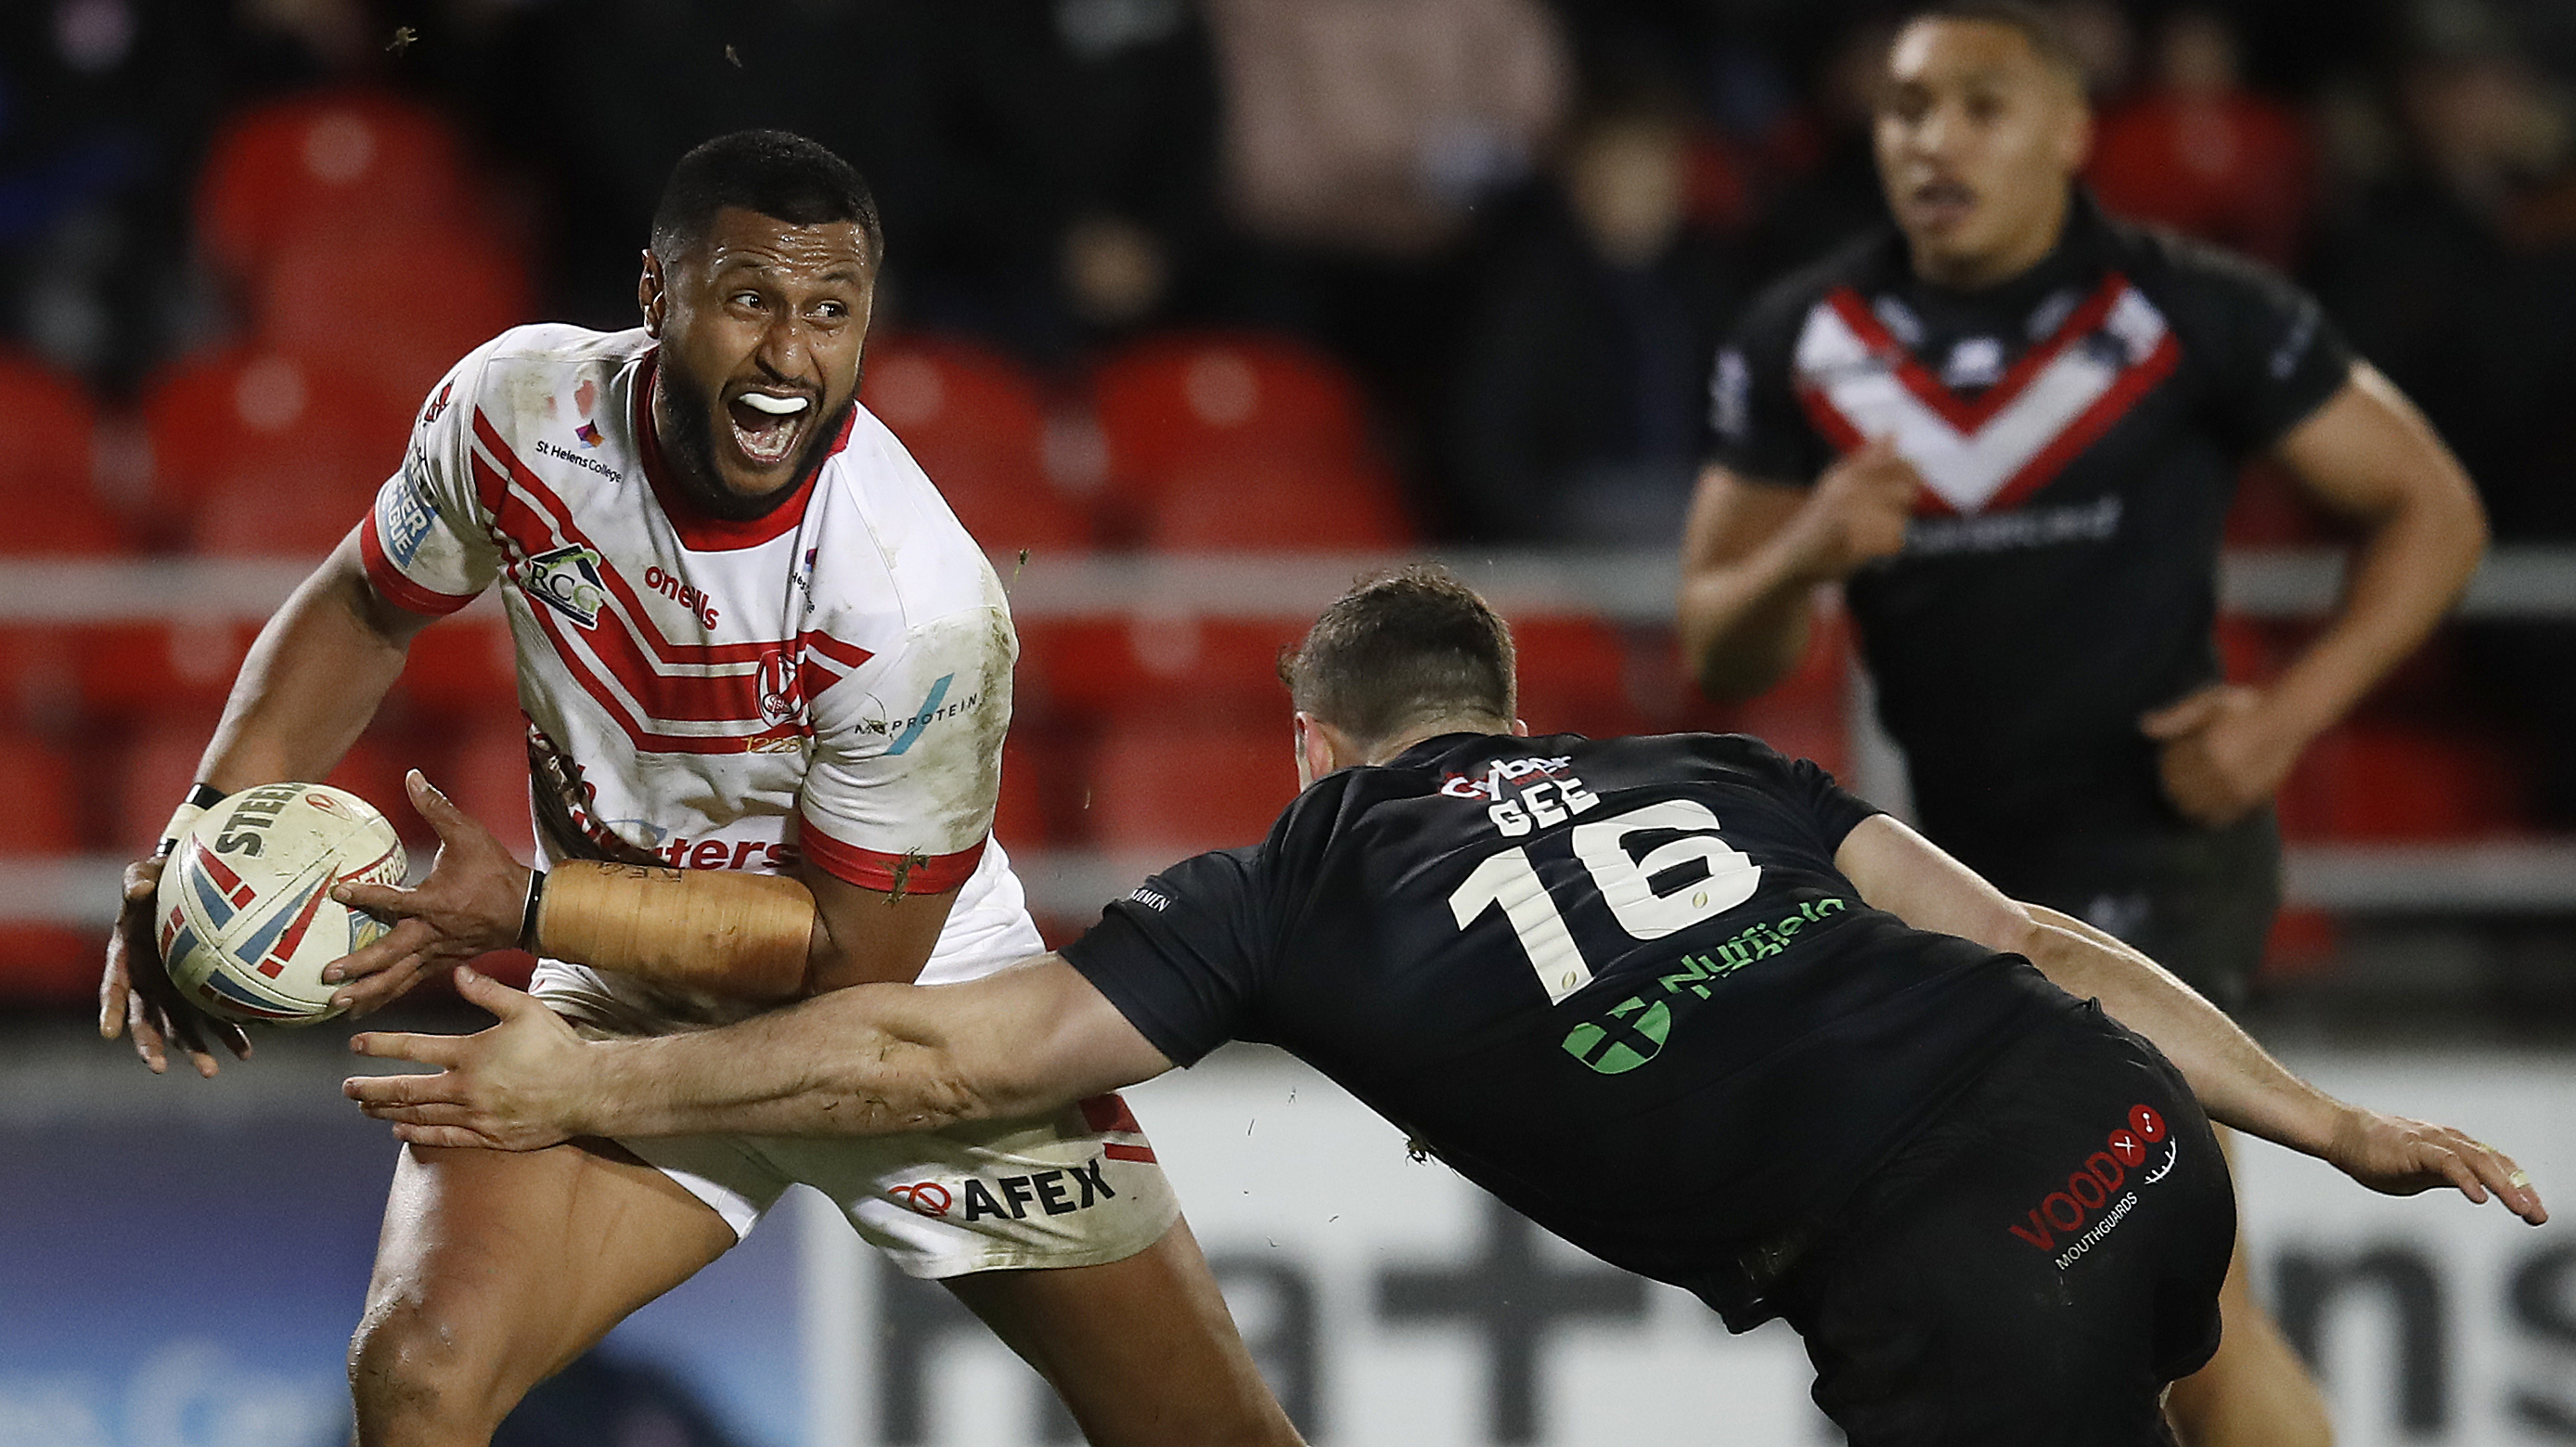 Super League Preview: St Helens and Warrington meet in mouthwatering matchup